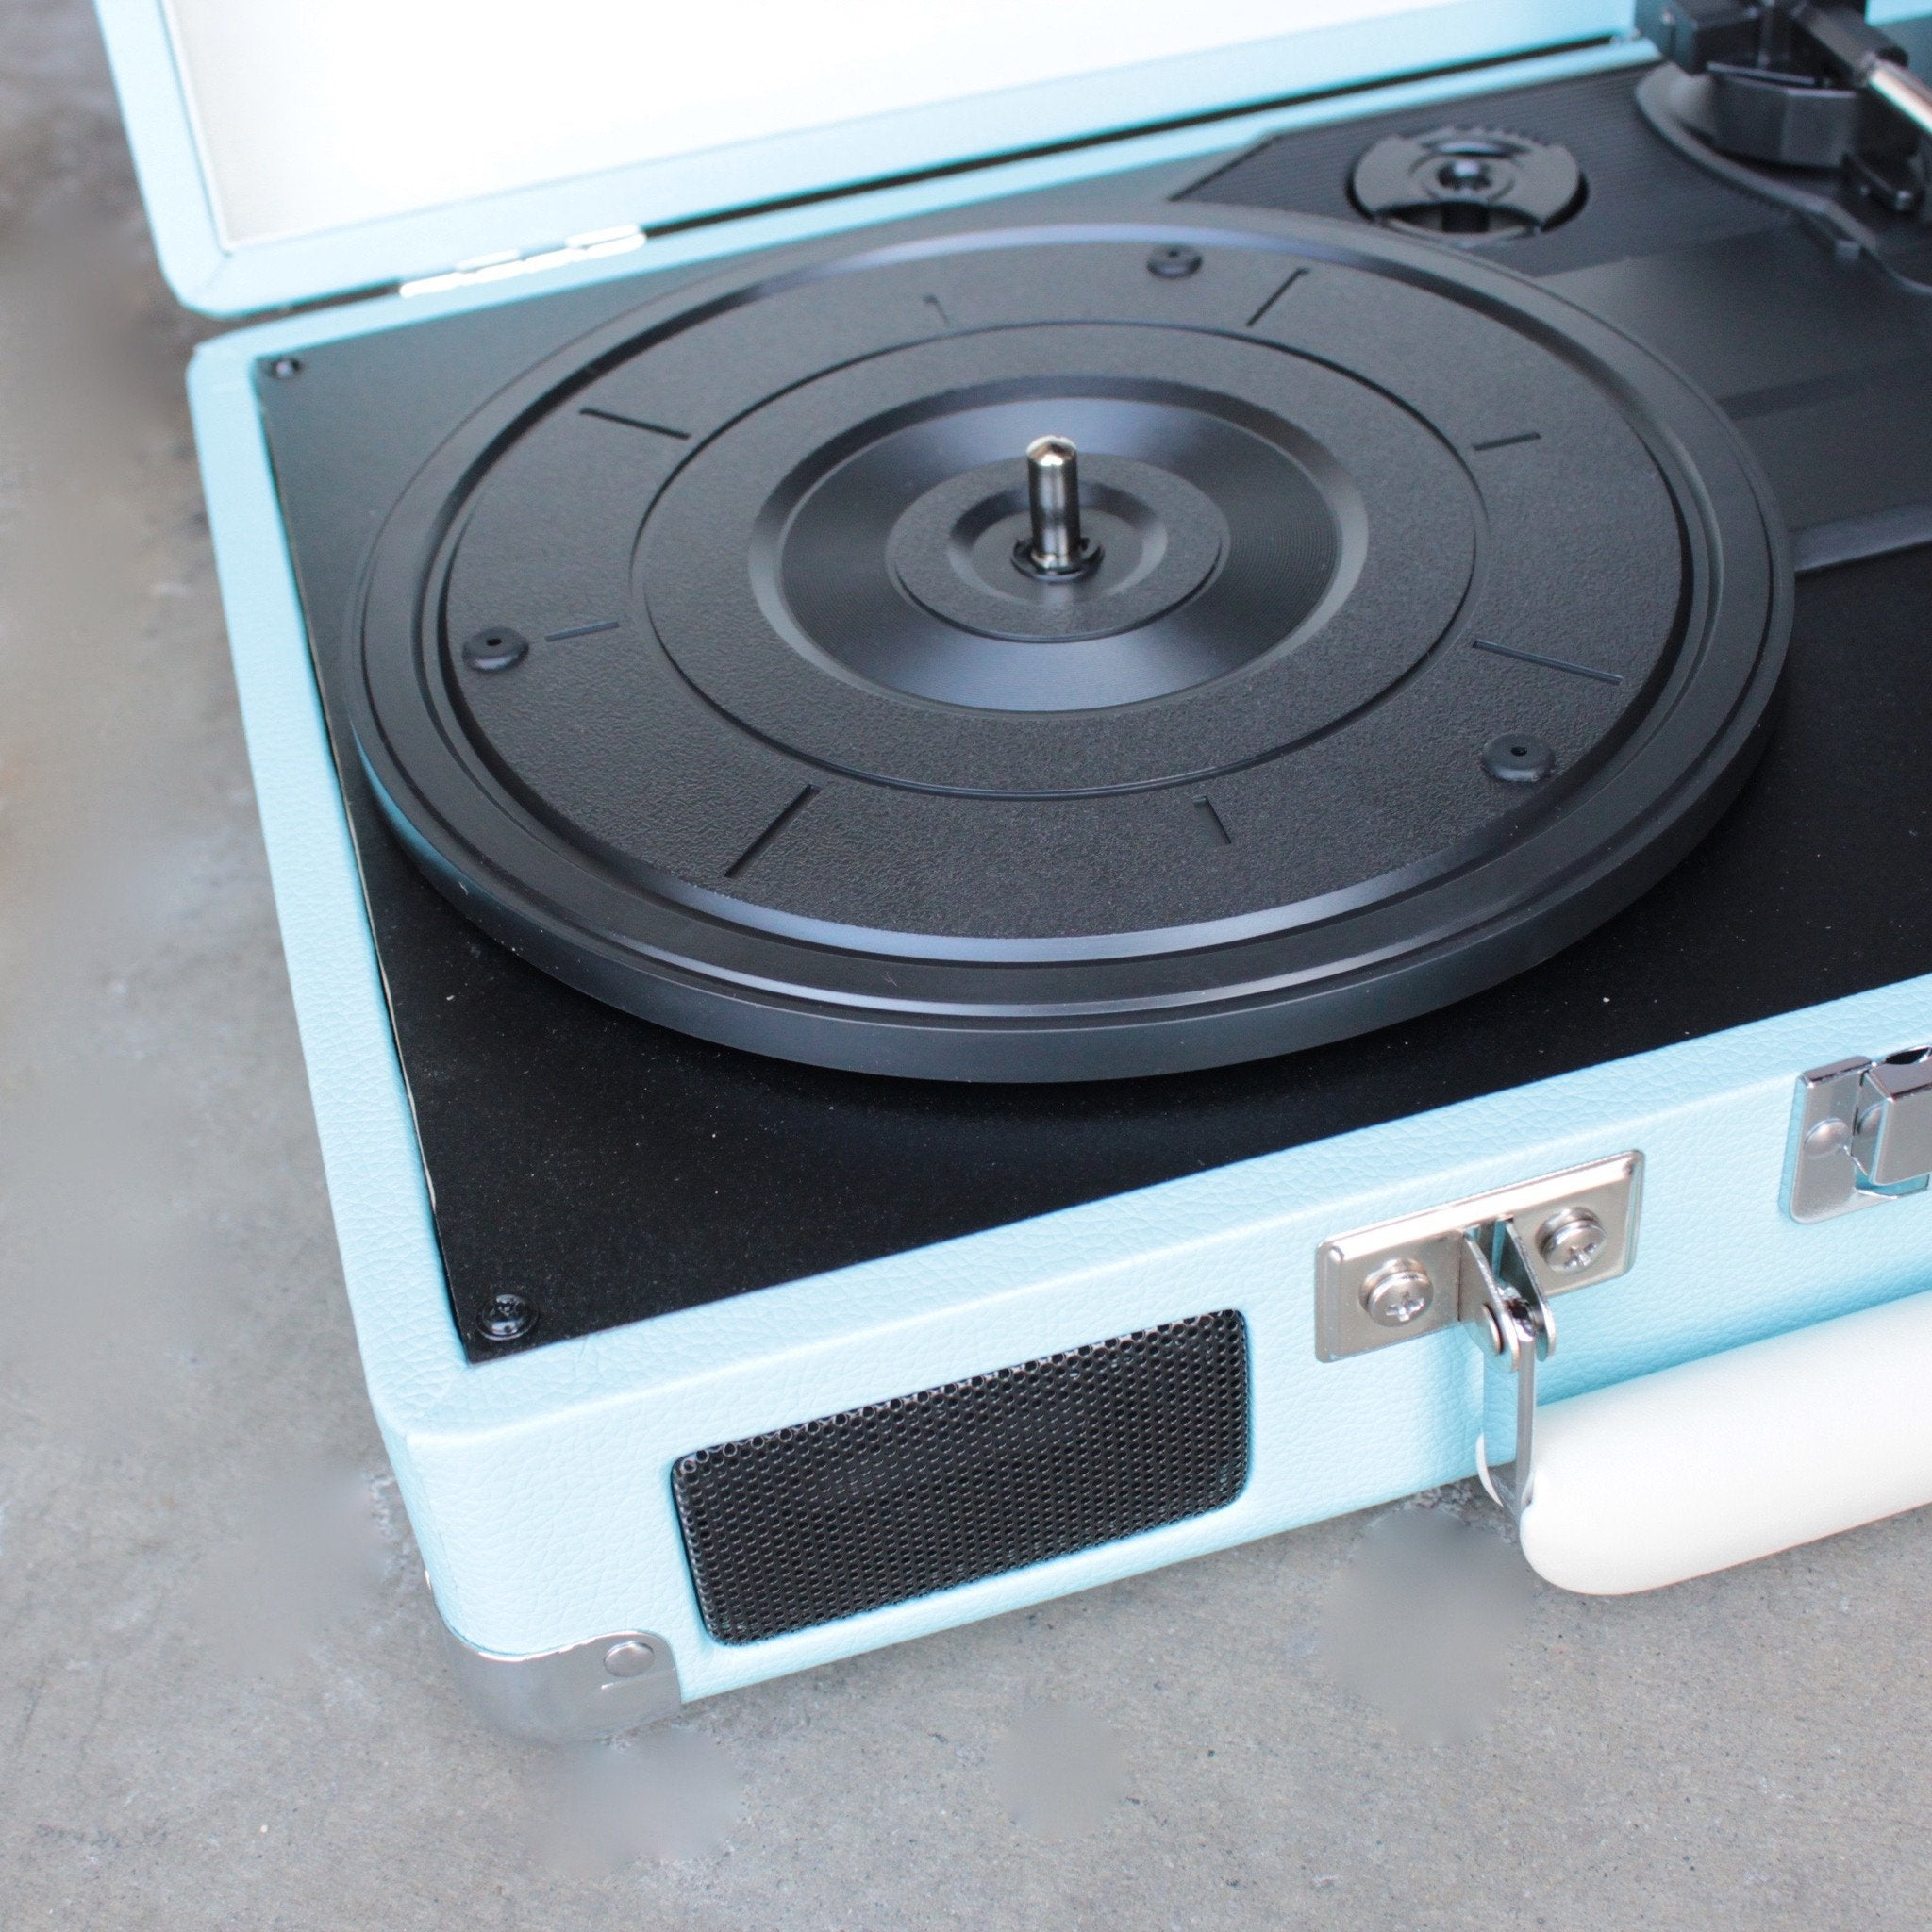 Crosley Cruiser Portable Turntable In Turquoise   Shophearts   3